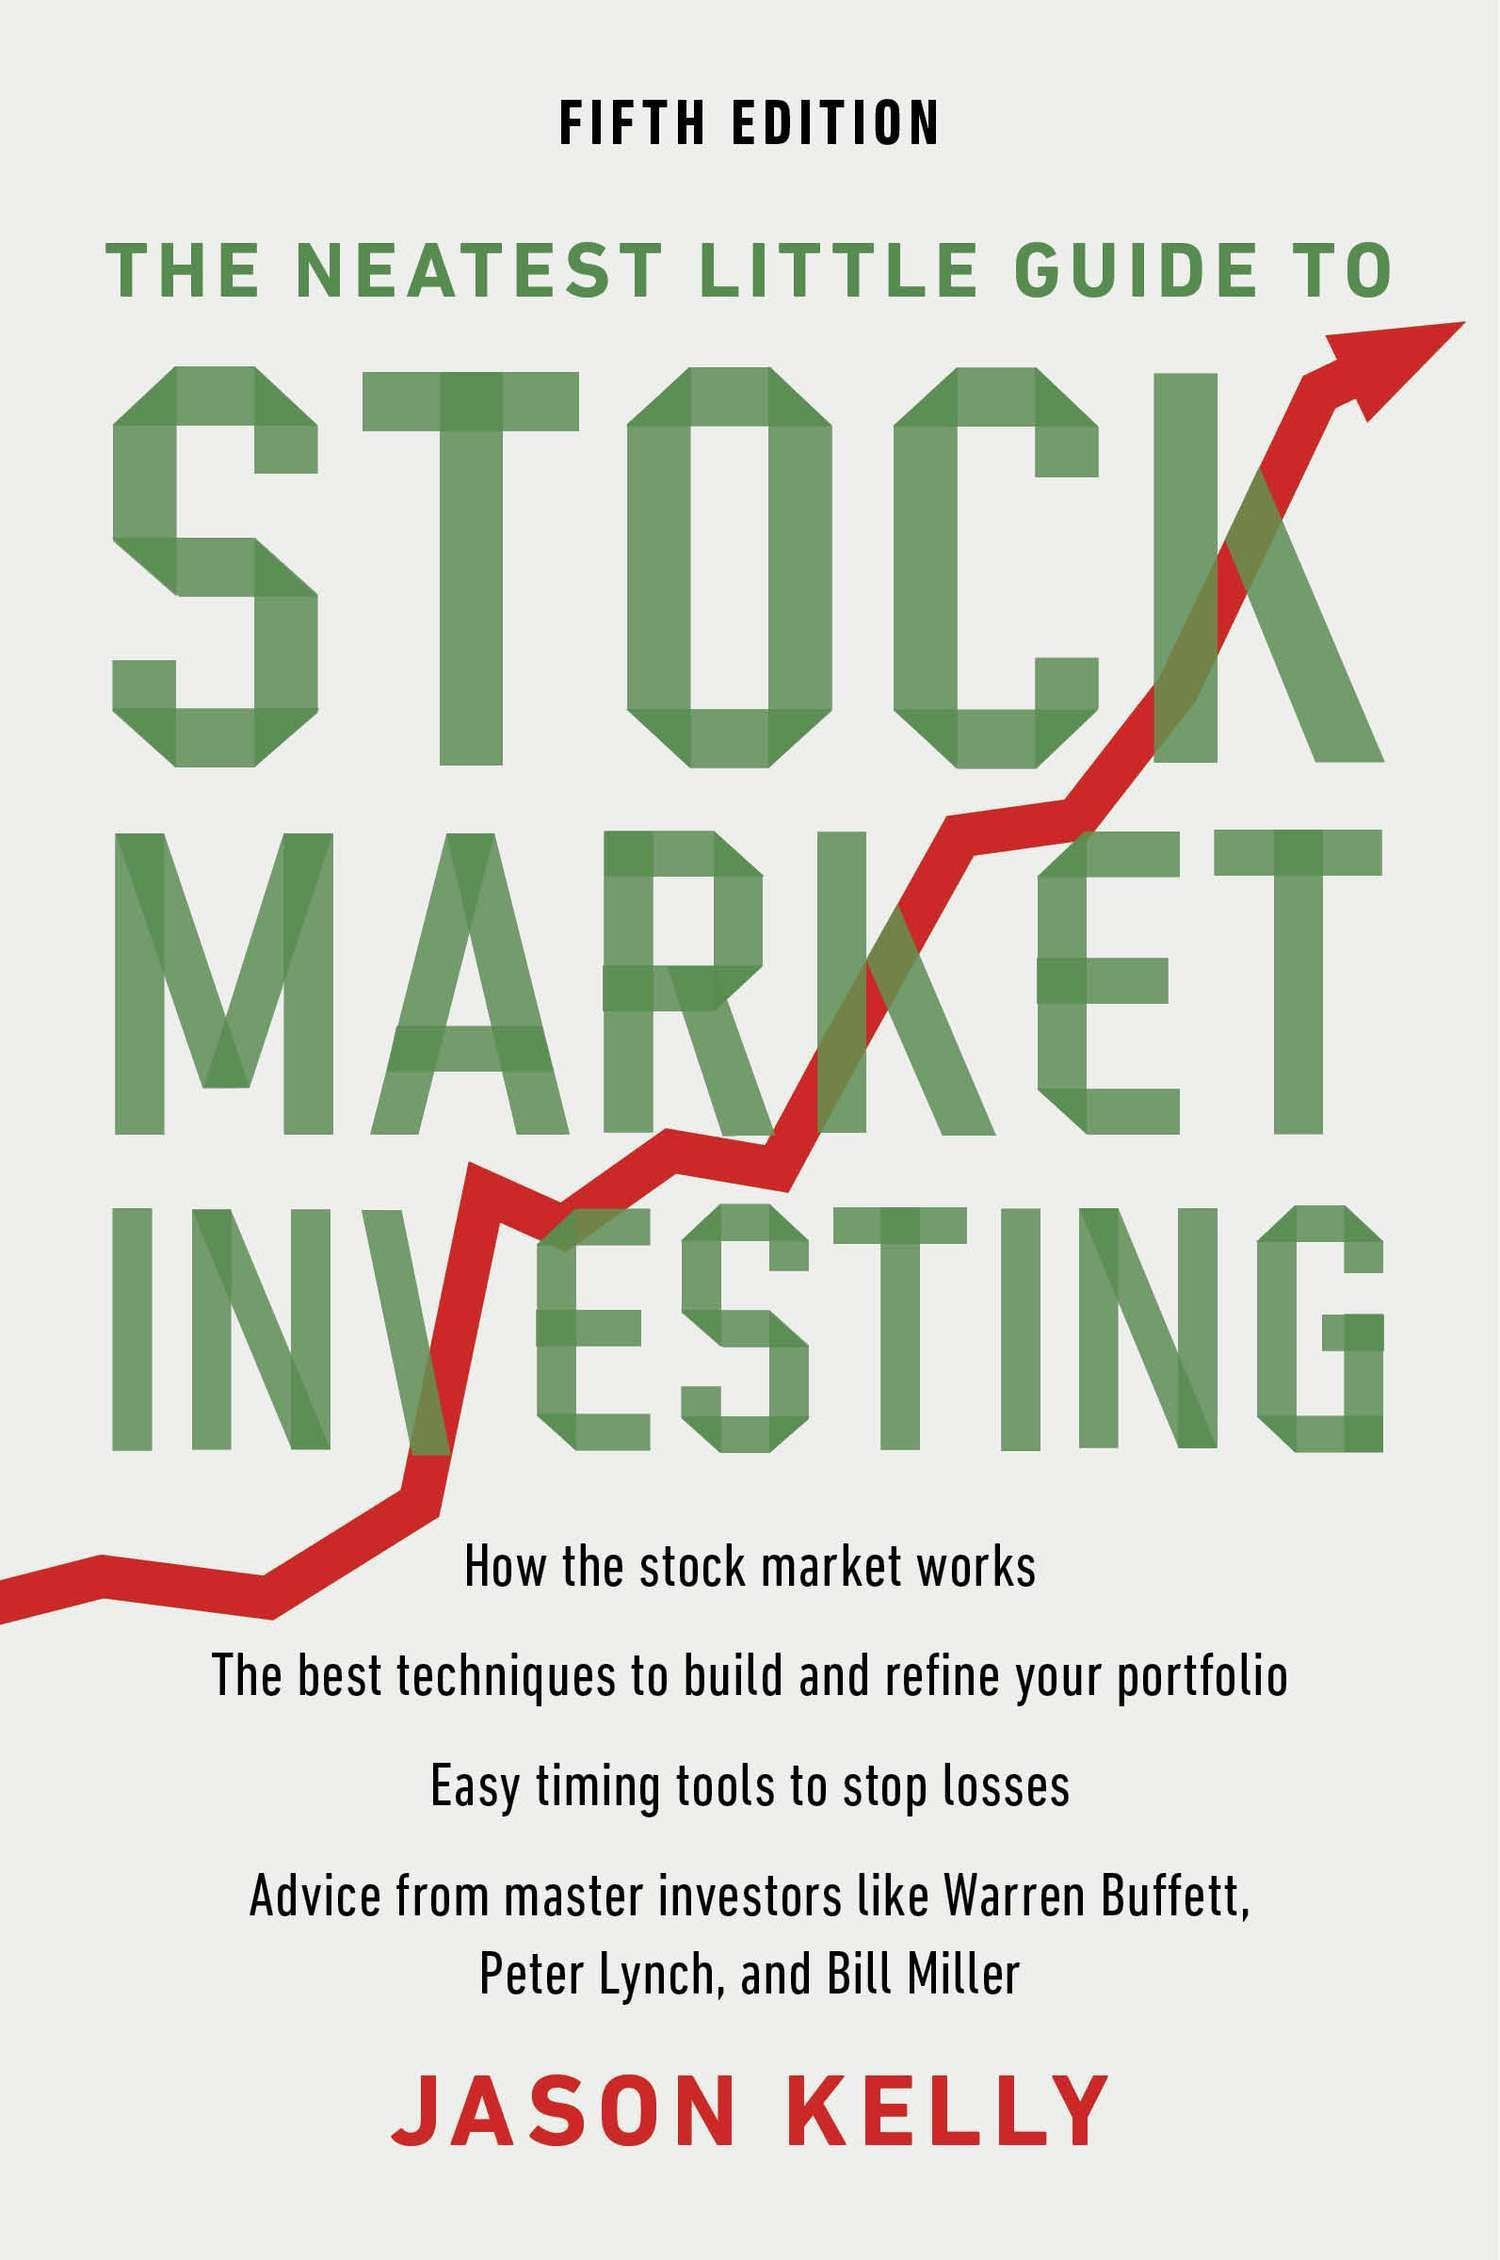 The Neatest Little Guide to Stock Market Investing: Fifth Edition Paperback – December 24, 2012 Jason Kelly Plume 0452298628 Personal Finance - Investing